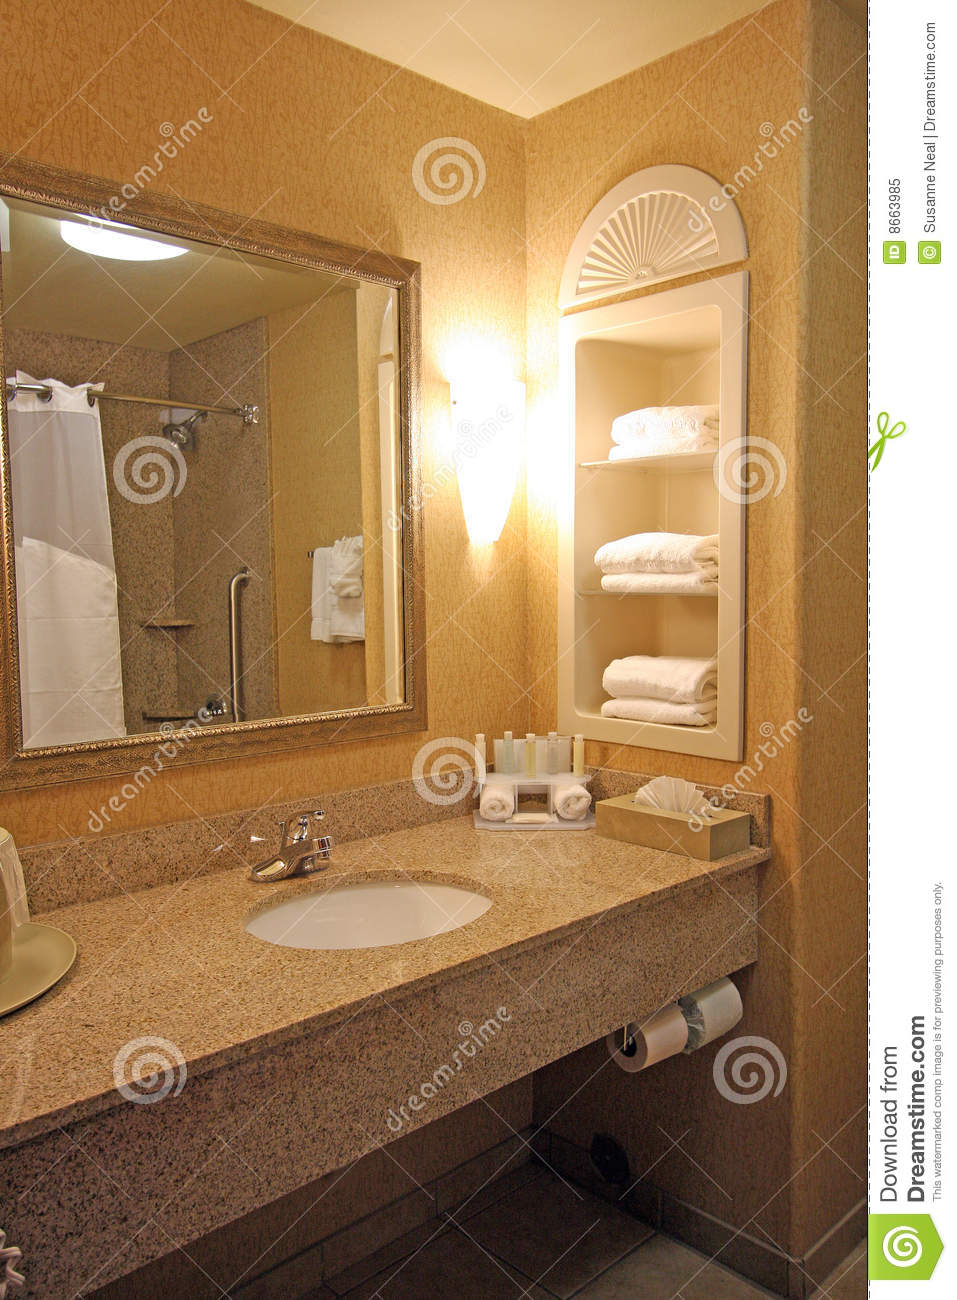 hotel bathroom mirrors hotel bathroom sink area royalty free stock photo image 13168